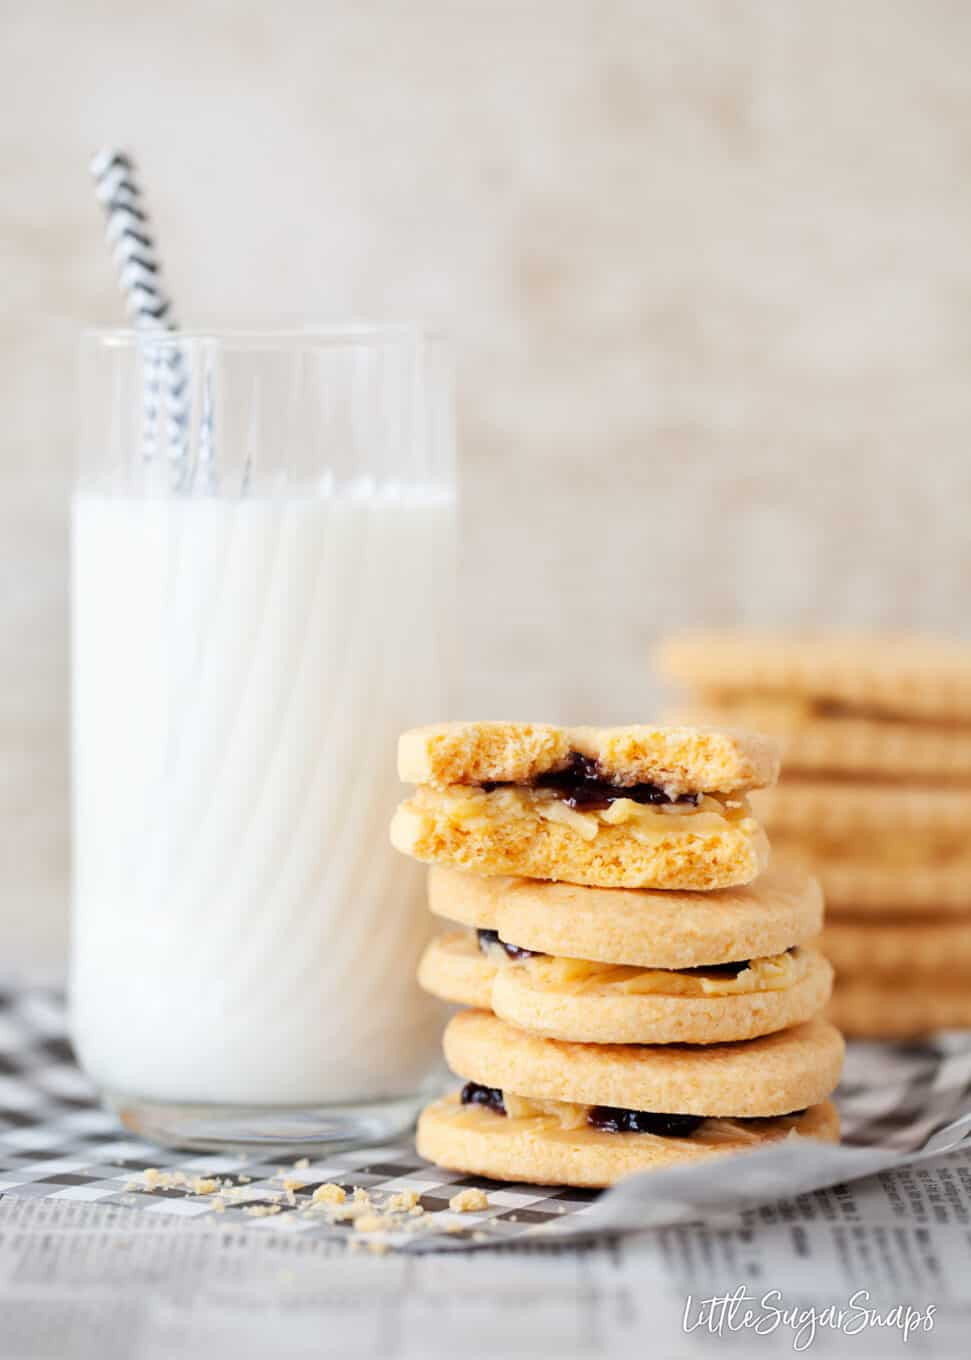 Custard creams biscuits stacked next to a tall glass of milk.